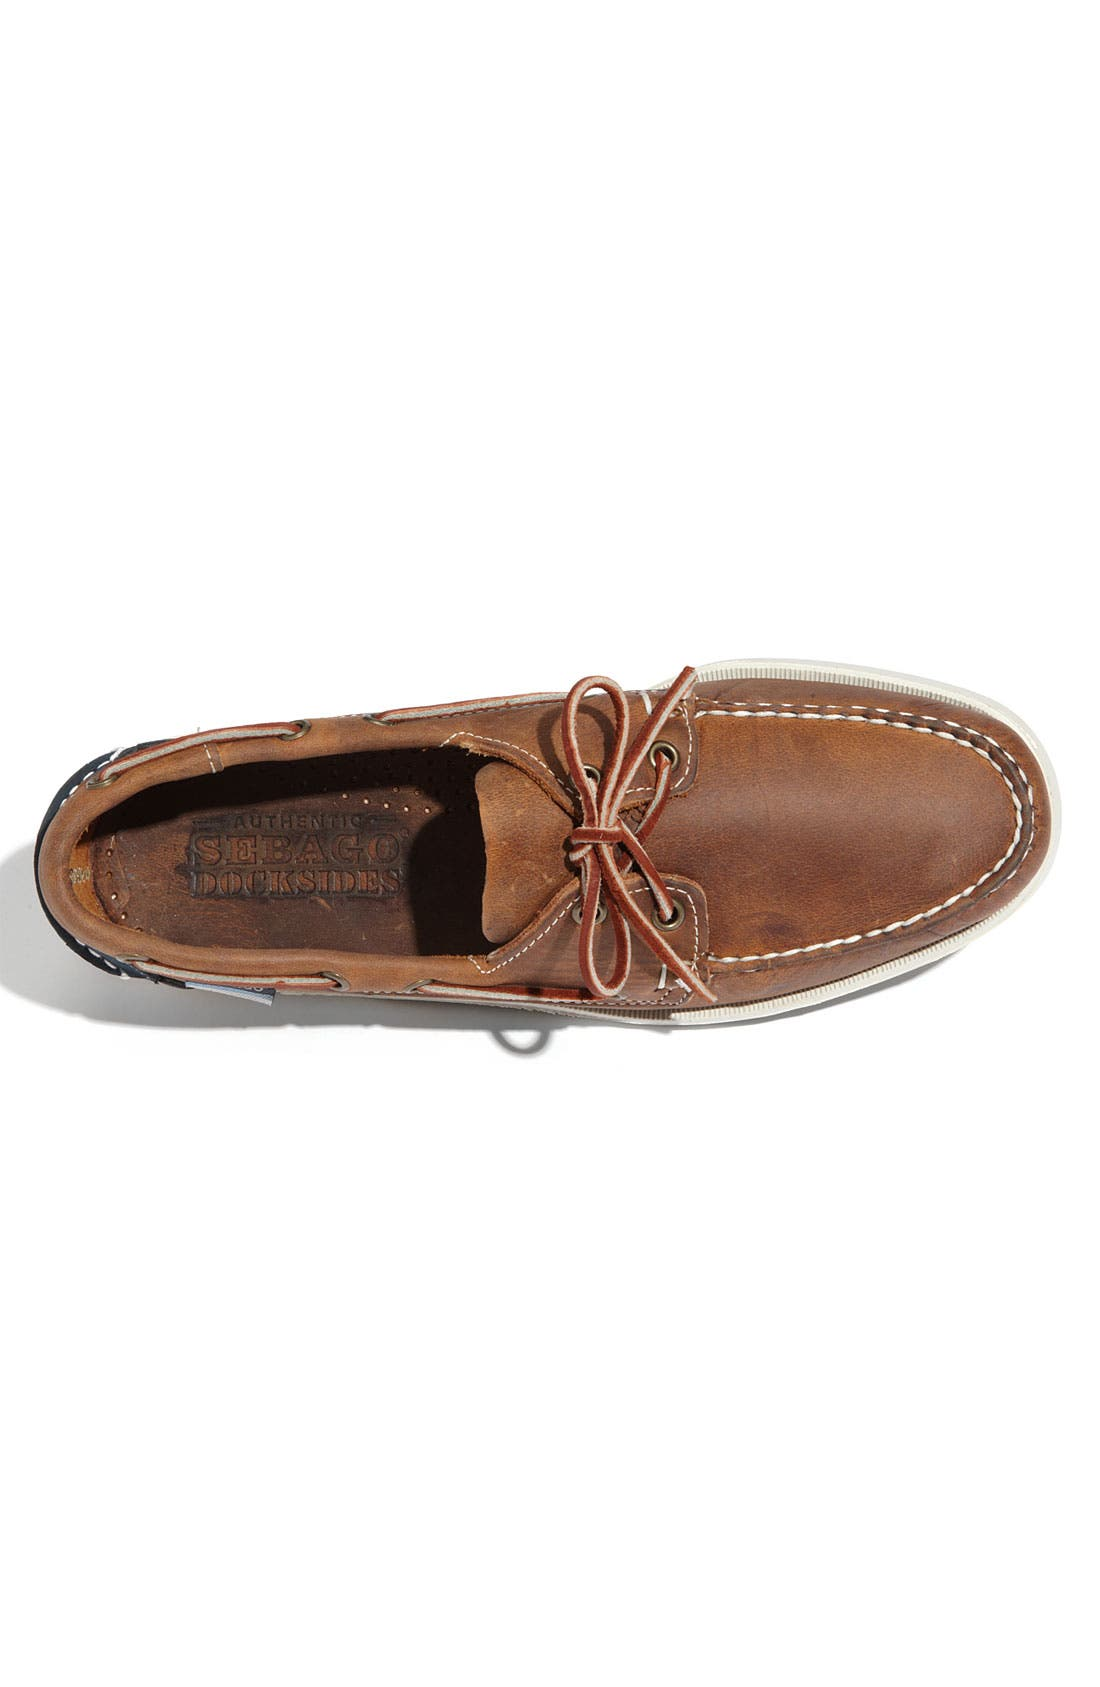 Alternate Image 3  - Sebago 'Spinnaker' Boat Shoe (Men)